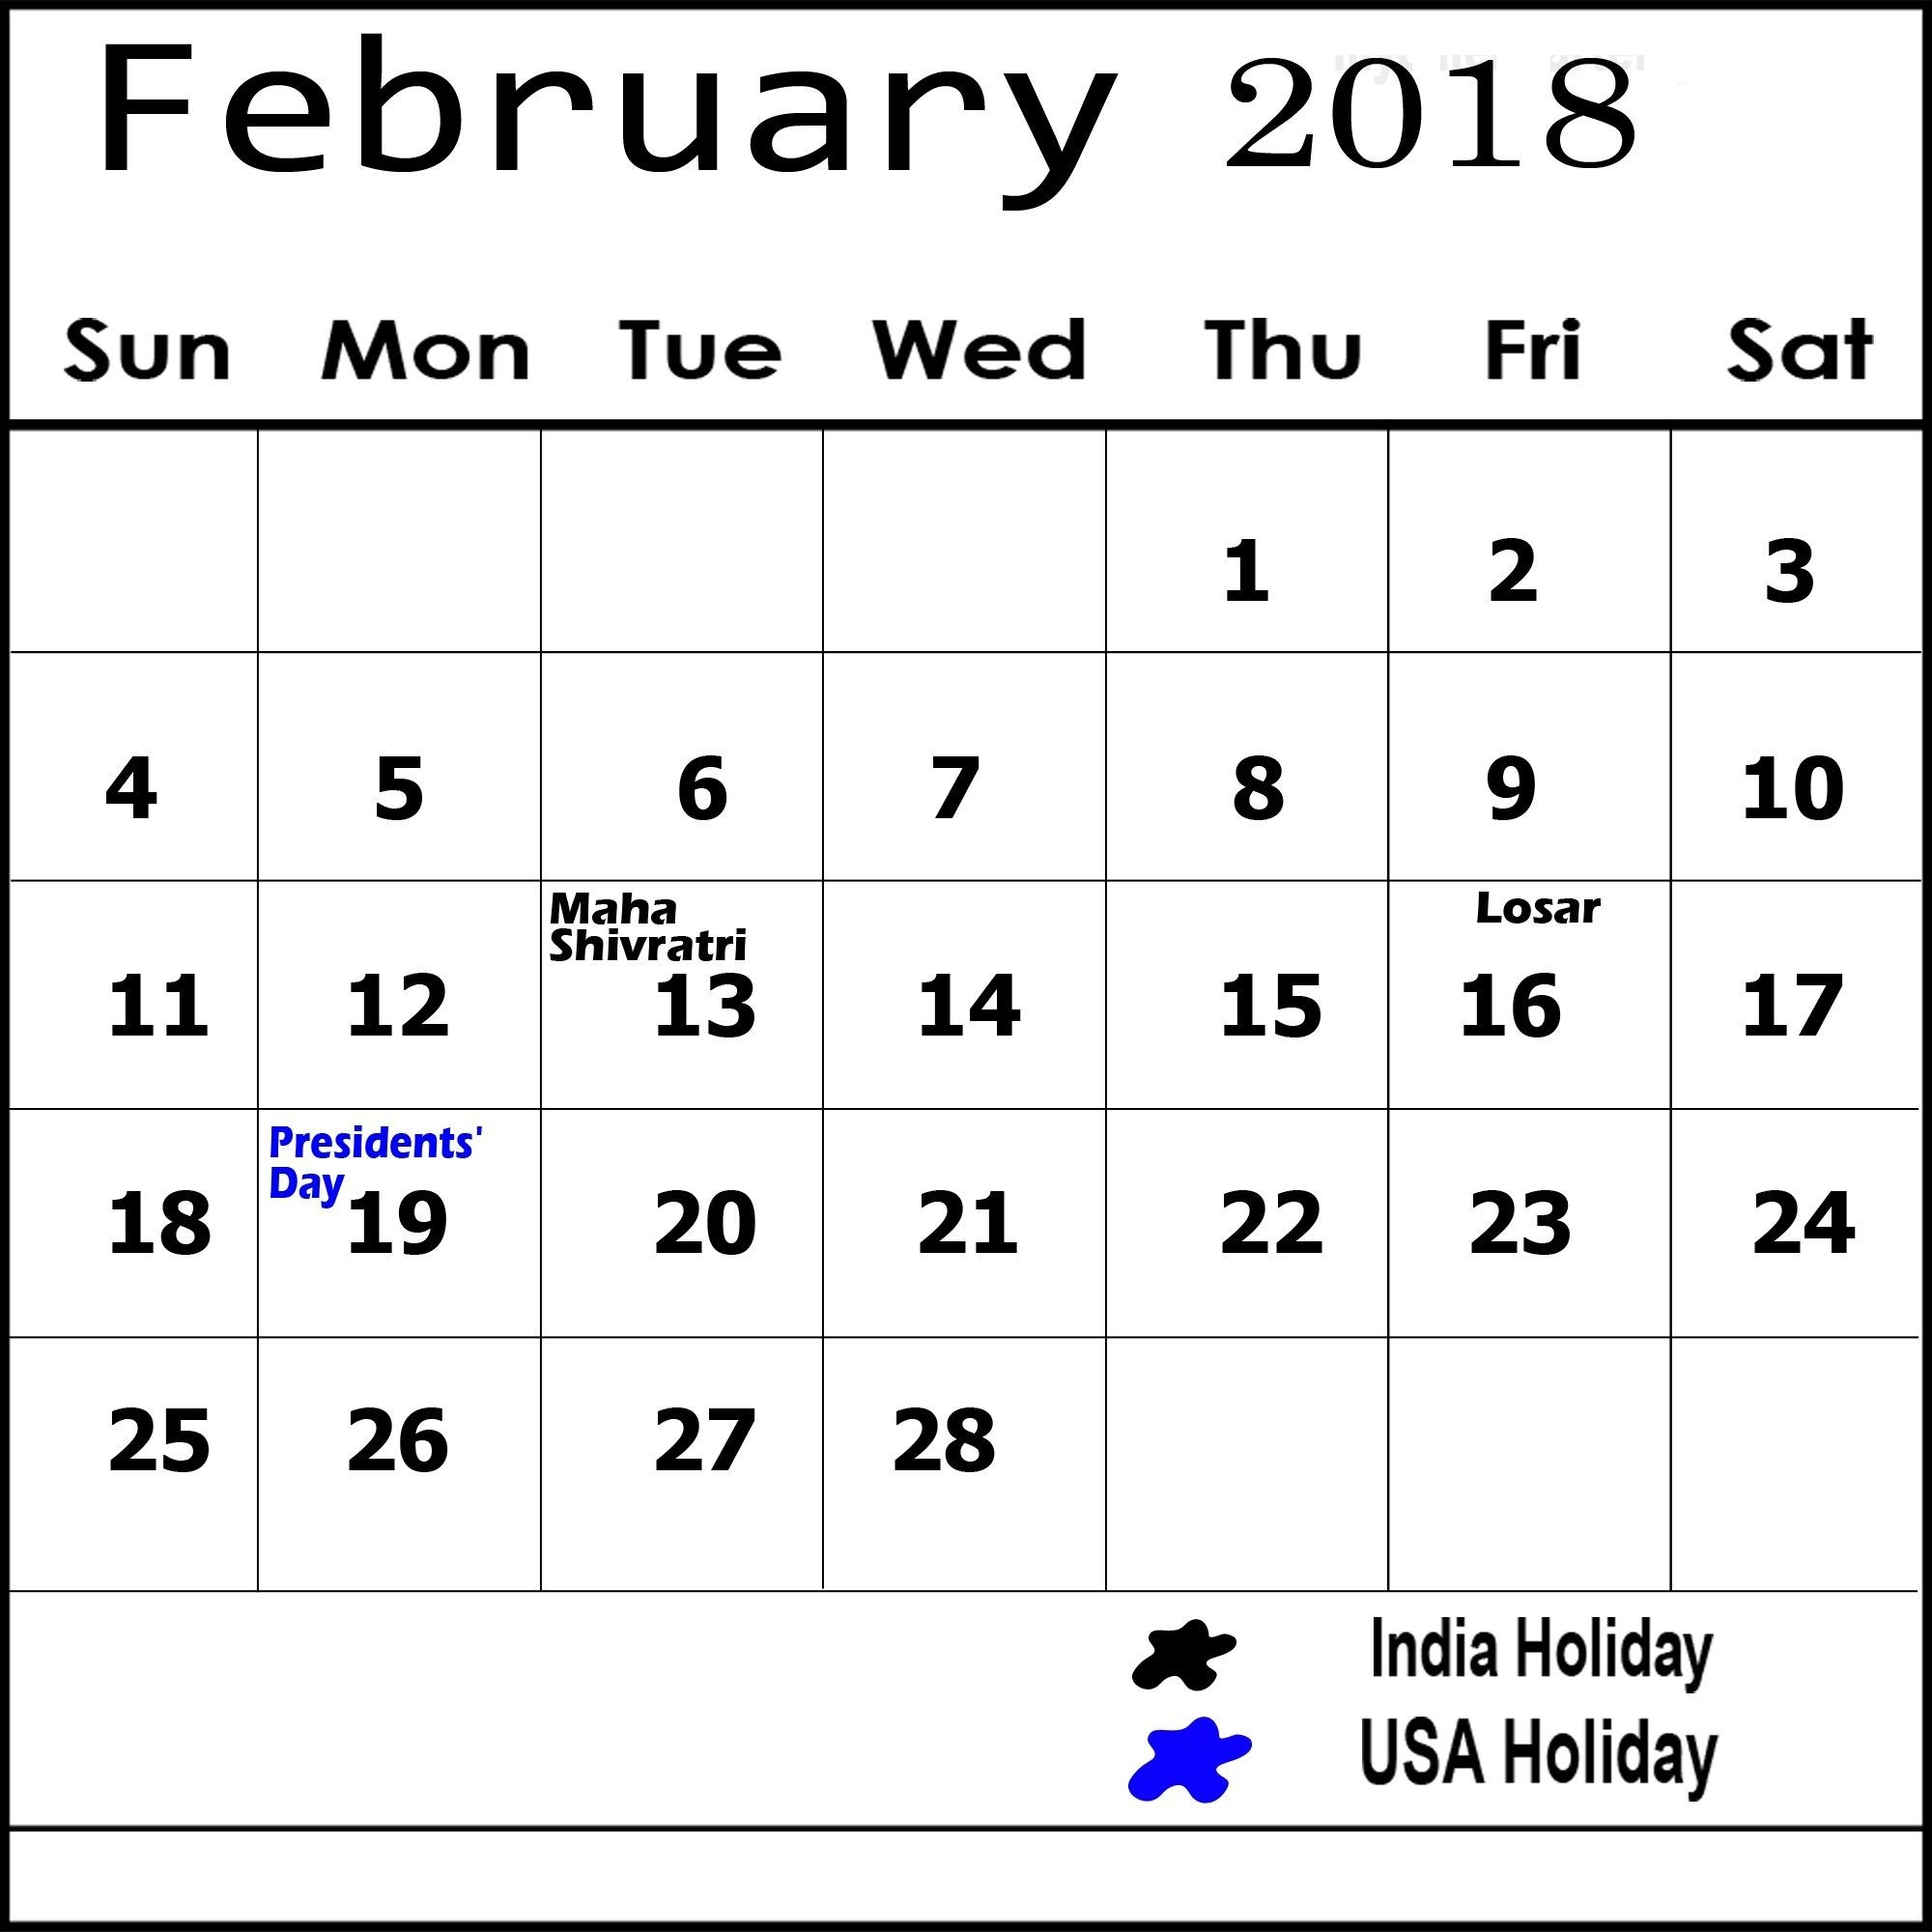 March 2019 Calendar India Más Arriba-a-fecha February 2019 Calendar India Of March 2019 Calendar India Actual Tag India